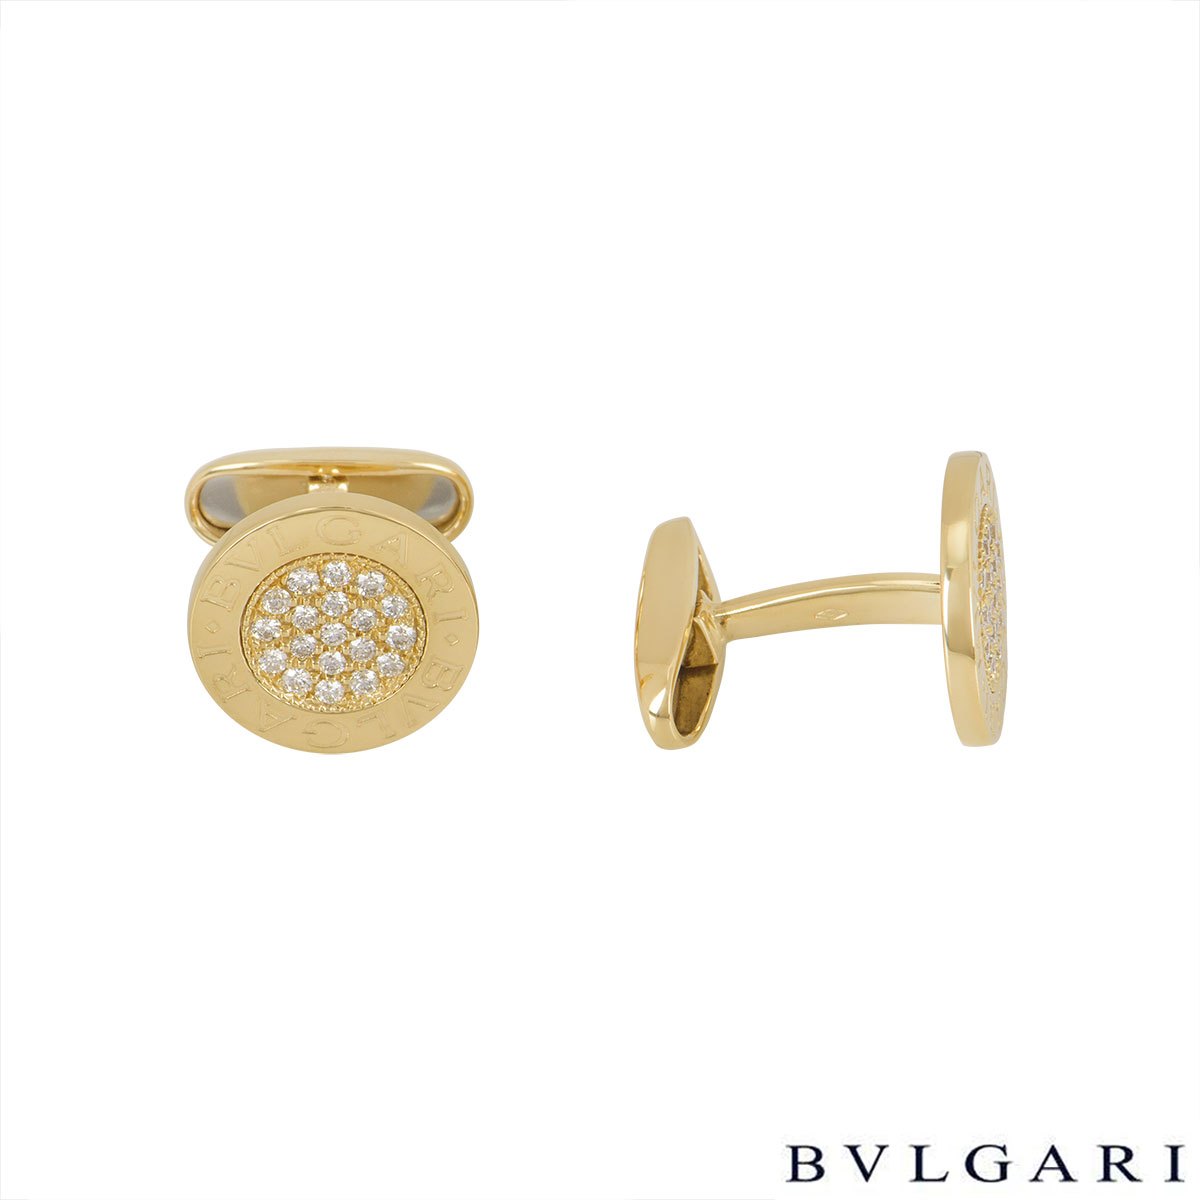 Bvlgari Yellow Gold Bvlgari Bvlgari Diamond Cufflinks